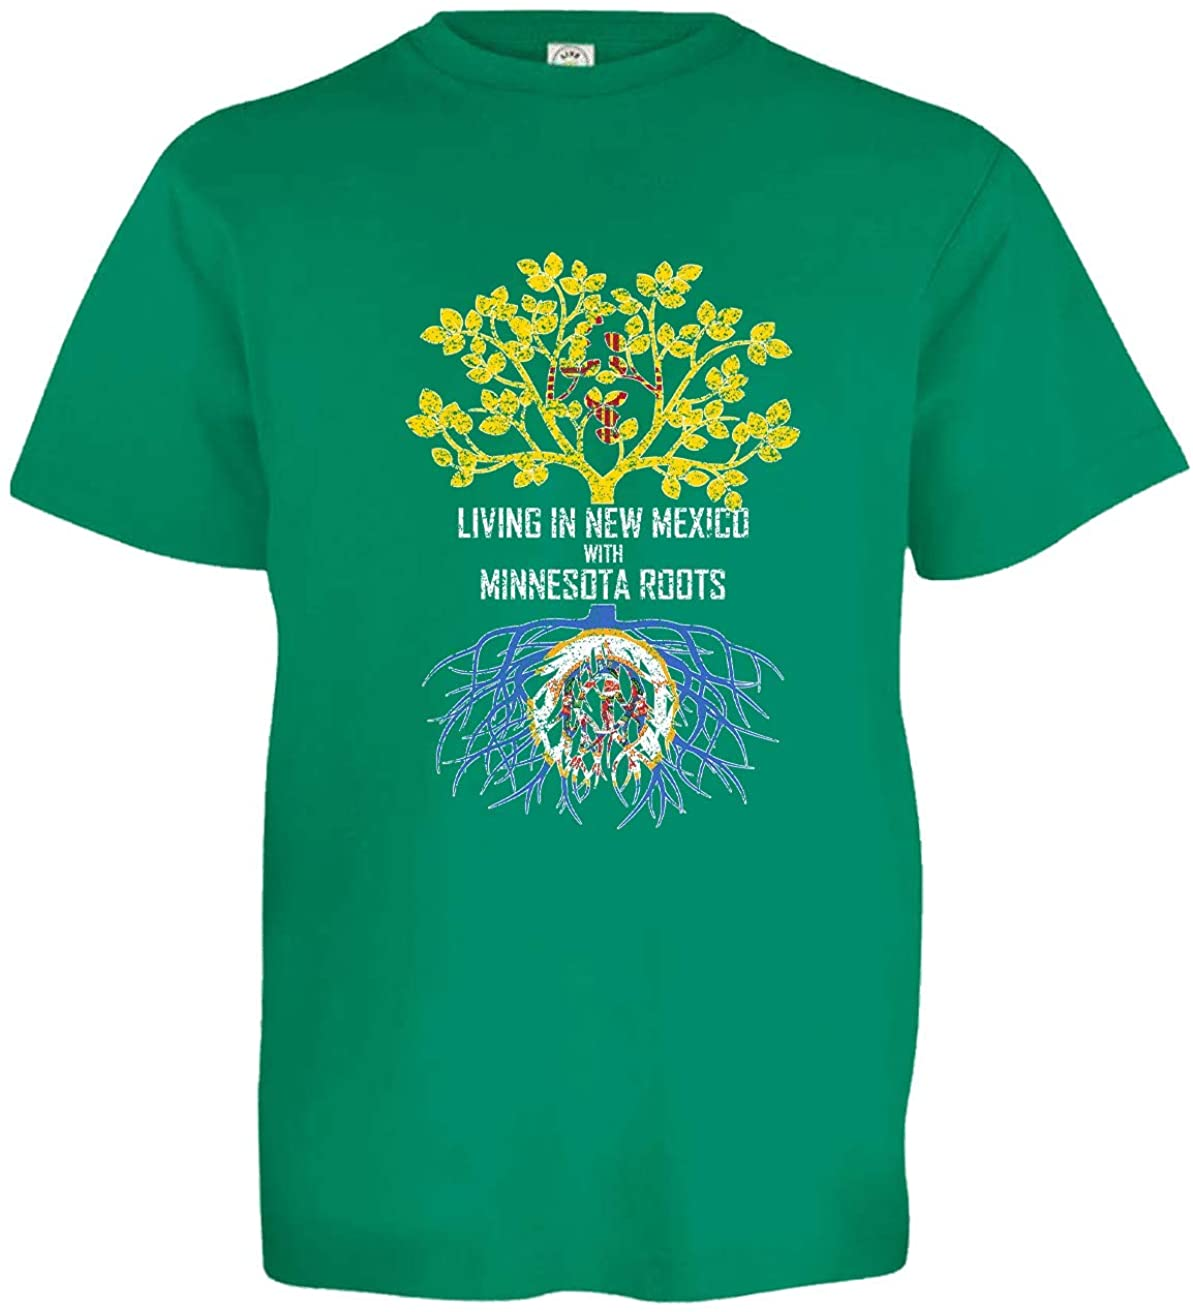 HARD EDGE DESIGN Girl's Youth Living in New Mexico with Minnesota Roots T-Shirt